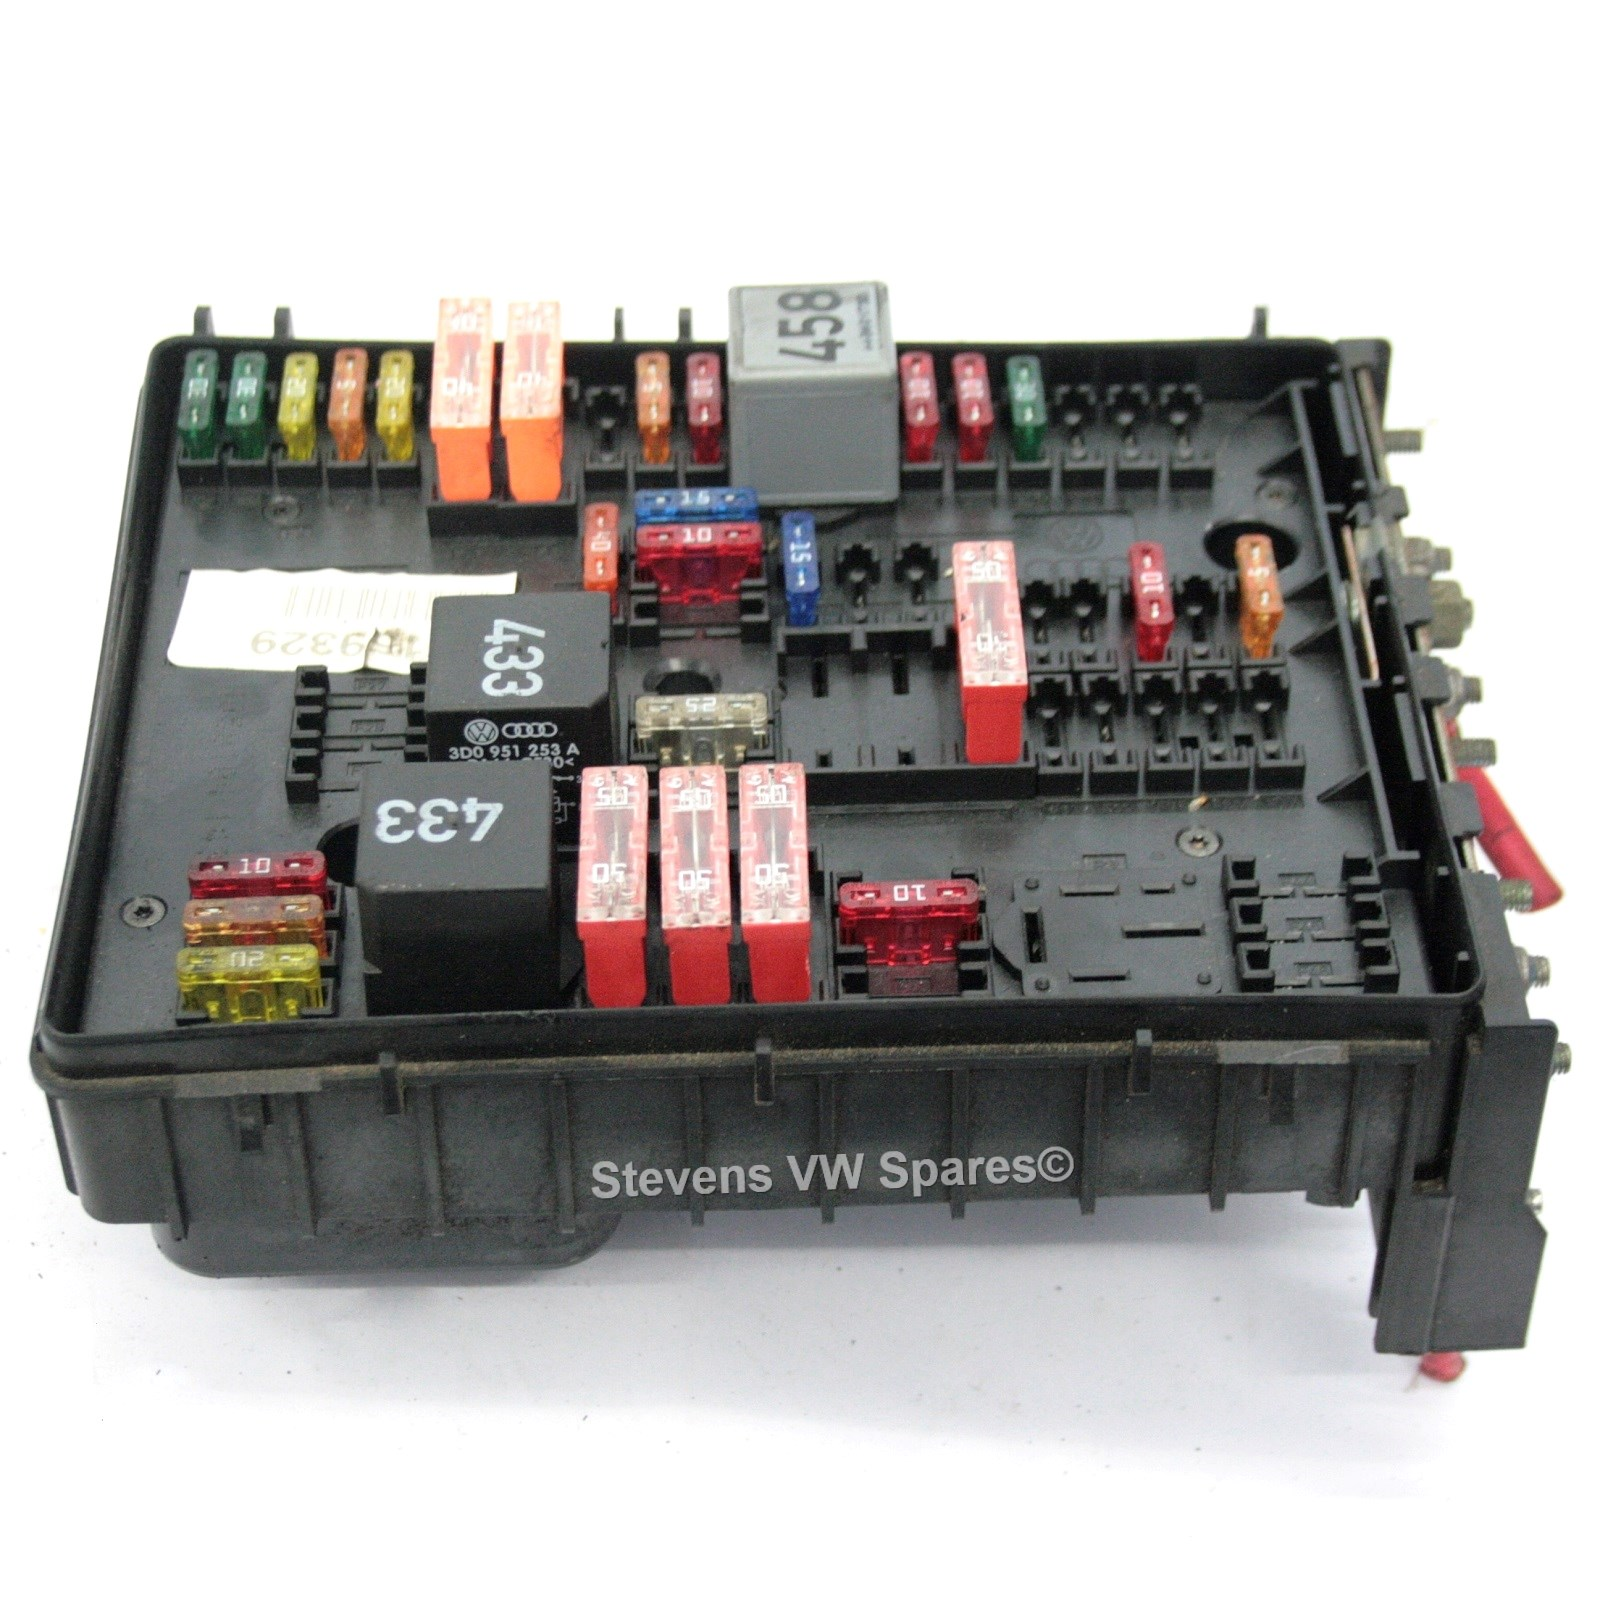 Sportage Fuse Box Diagram As Well Volkswagen Passat 2003 Diagram Fuse